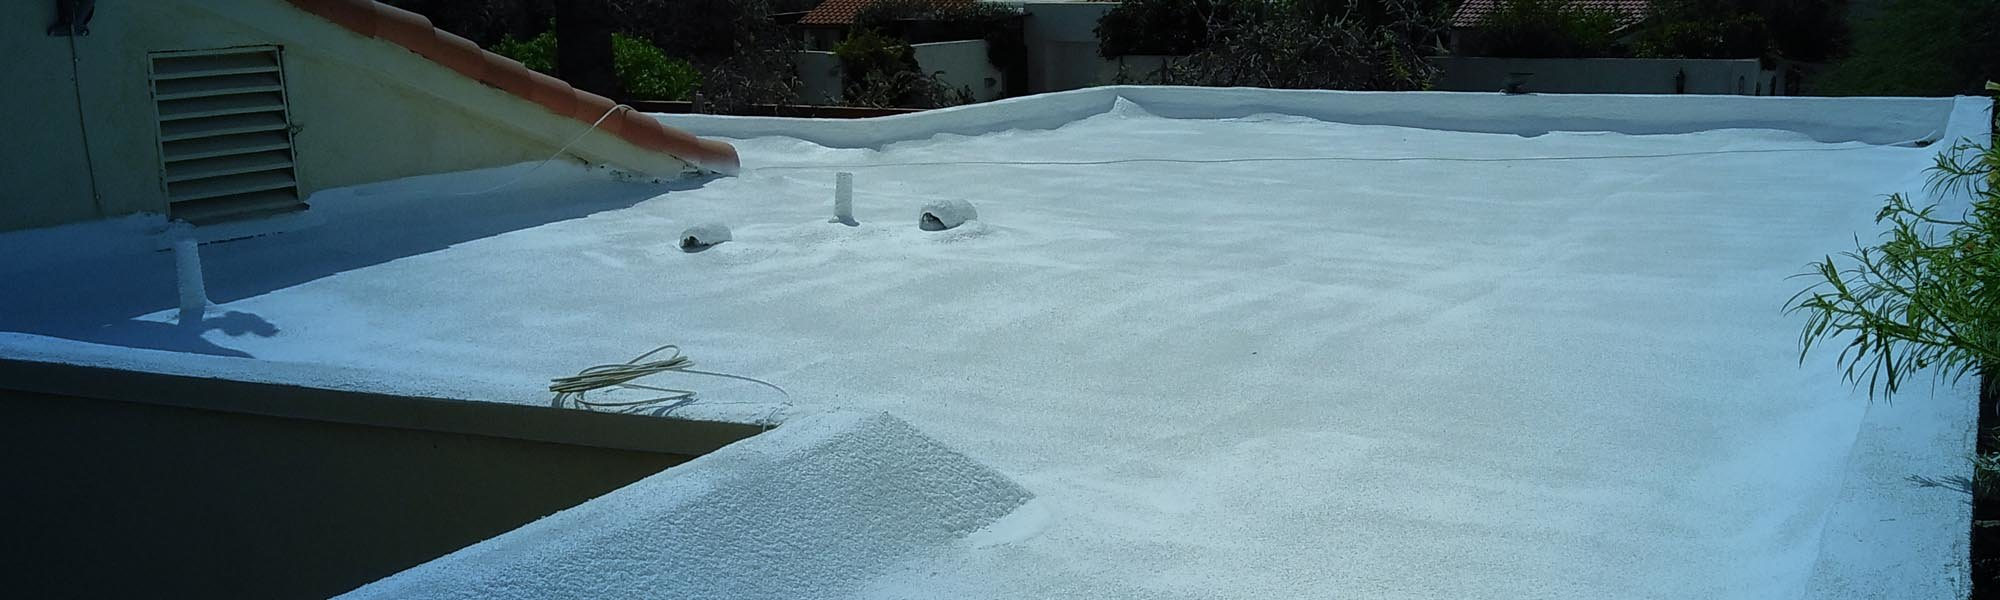 Roofing Contractors Phoenix Scottsdale Mesa Paul